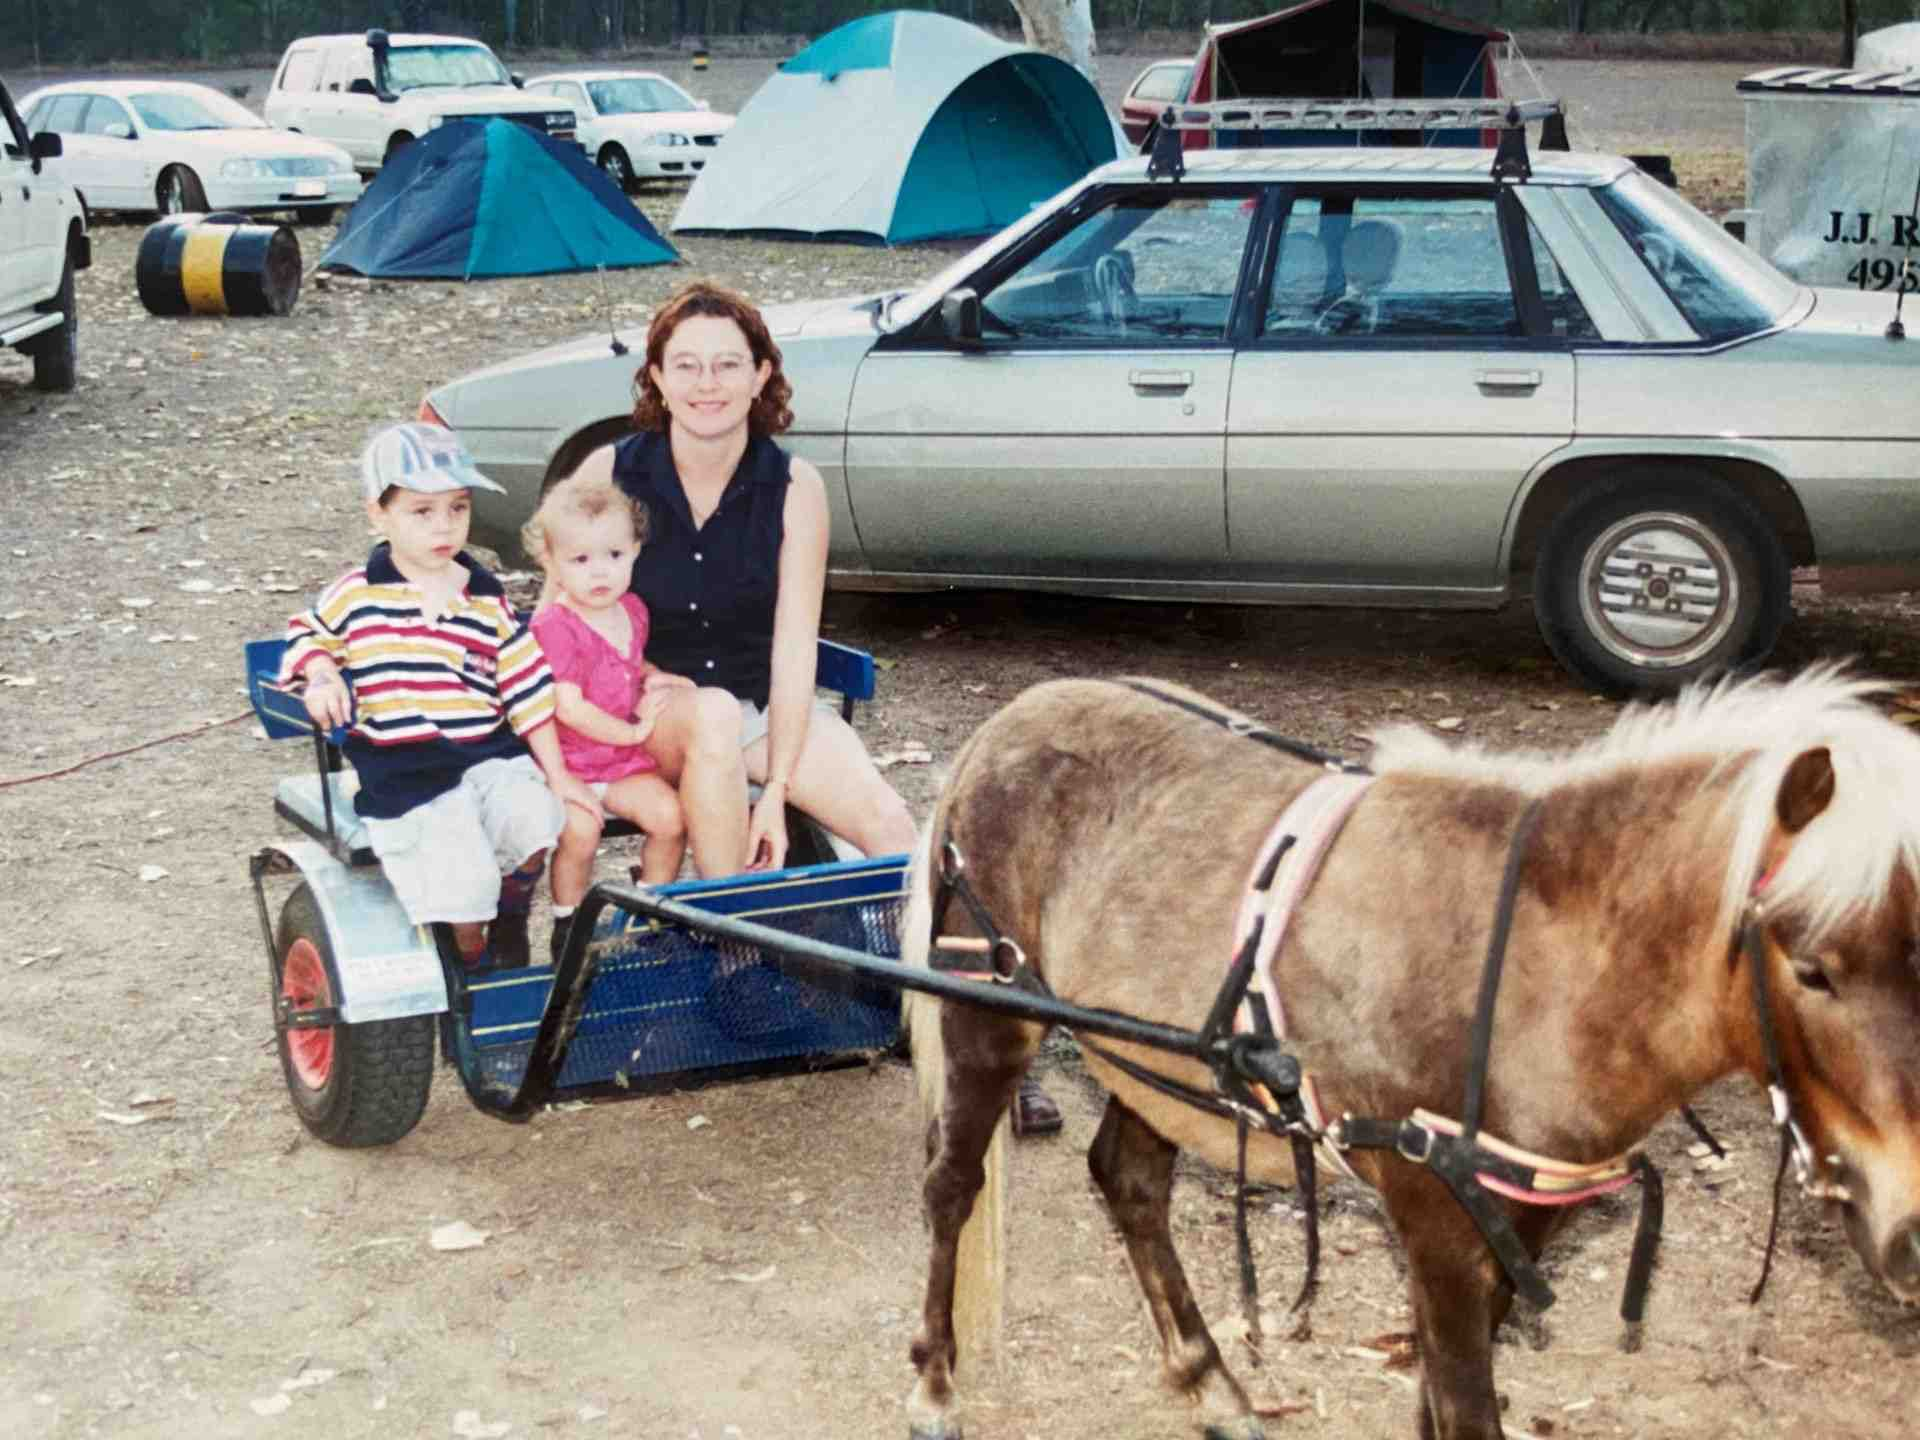 Michelle and Kids in Pony Carriage ride